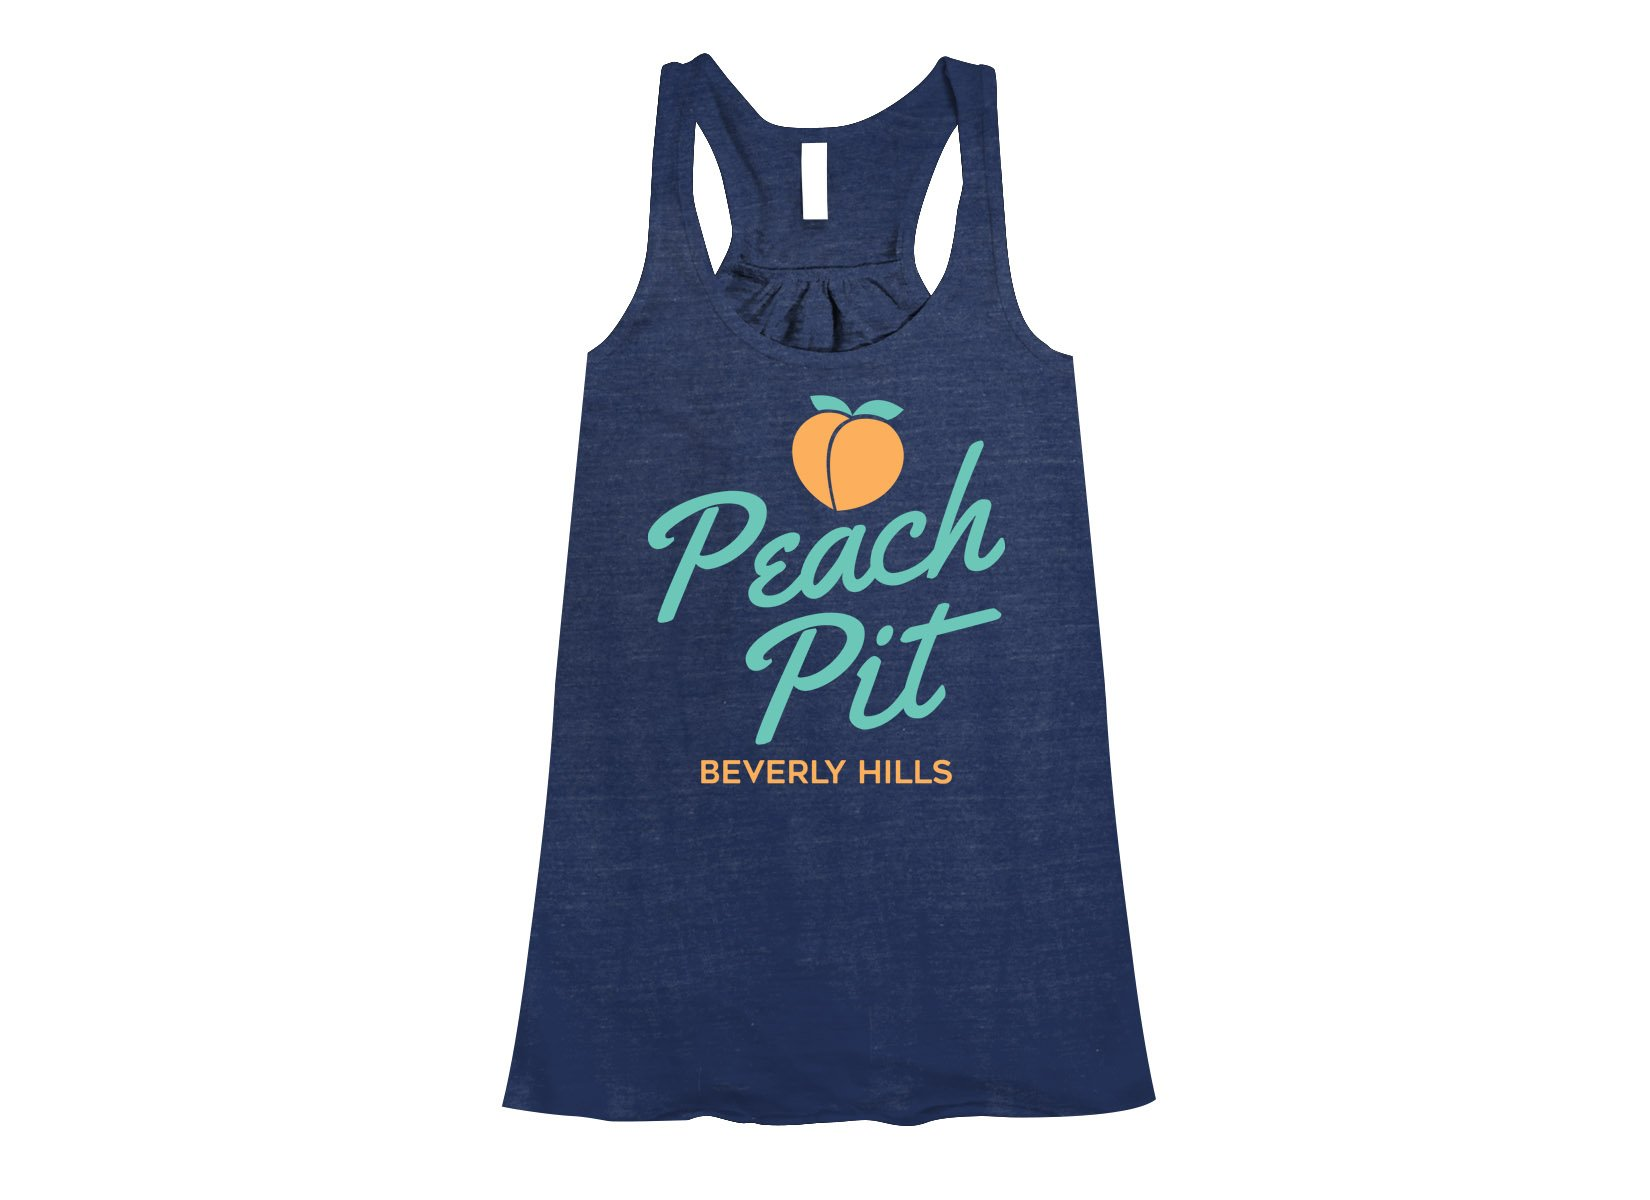 Peach Pit on Womens Tanks T-Shirt